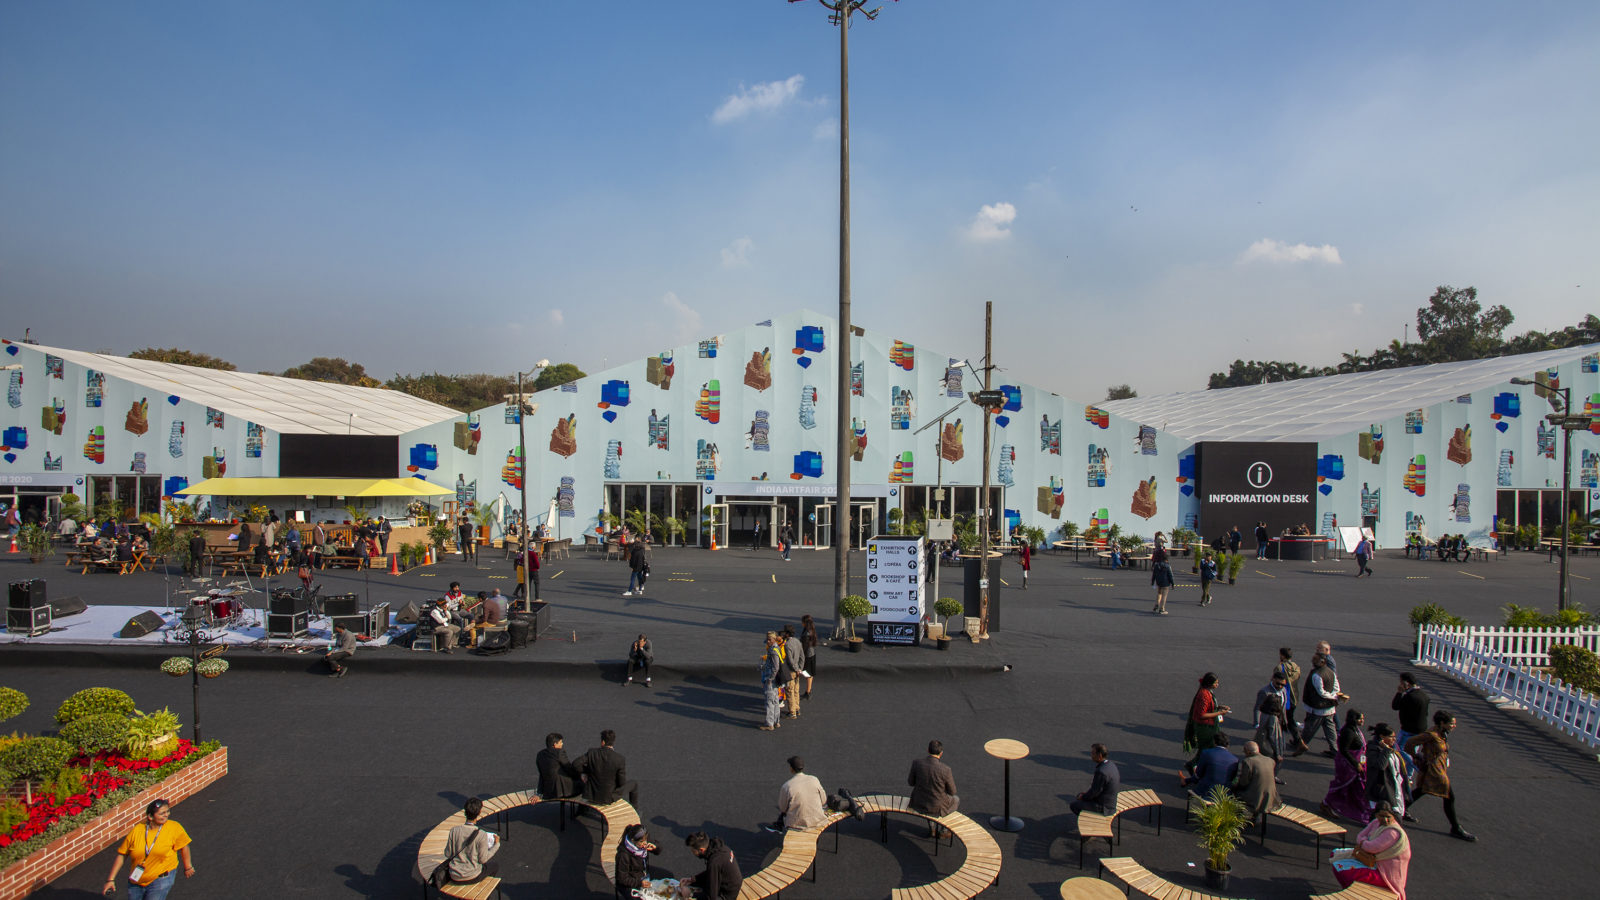 India Art Fair facade designed by Sameer Kulavoor. Installation view, 2019. Courtesy of India Art Fair